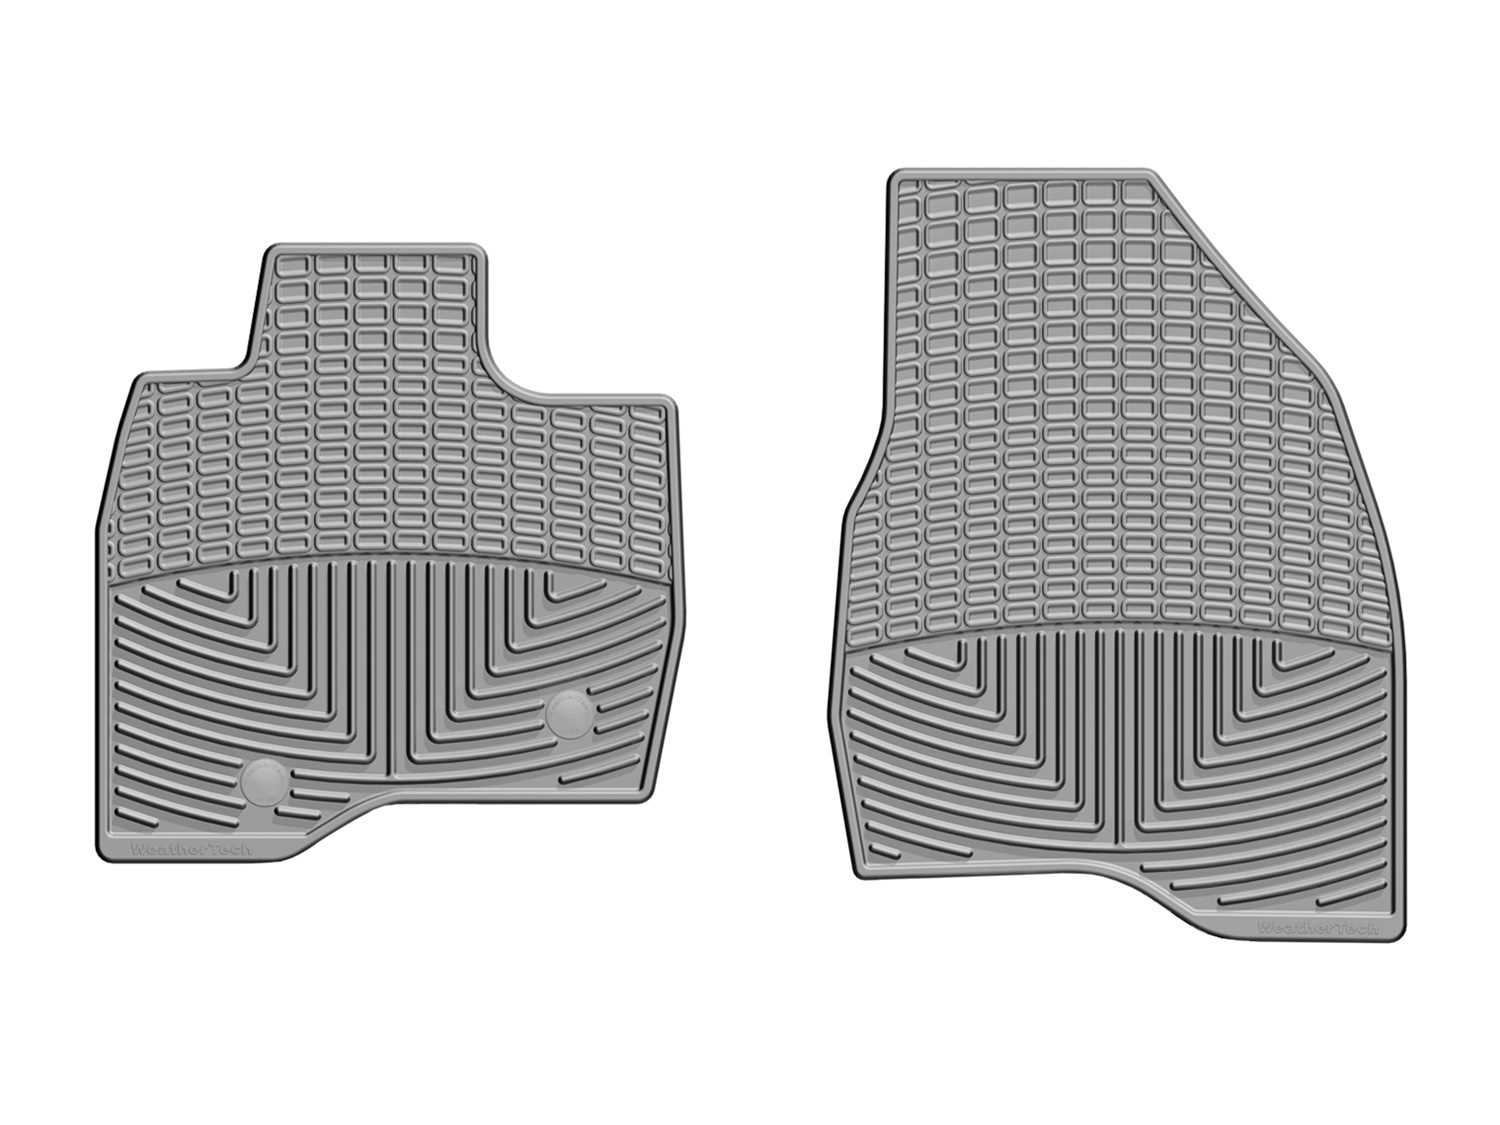 W344GR WeatherTech All Weather Floor Mats